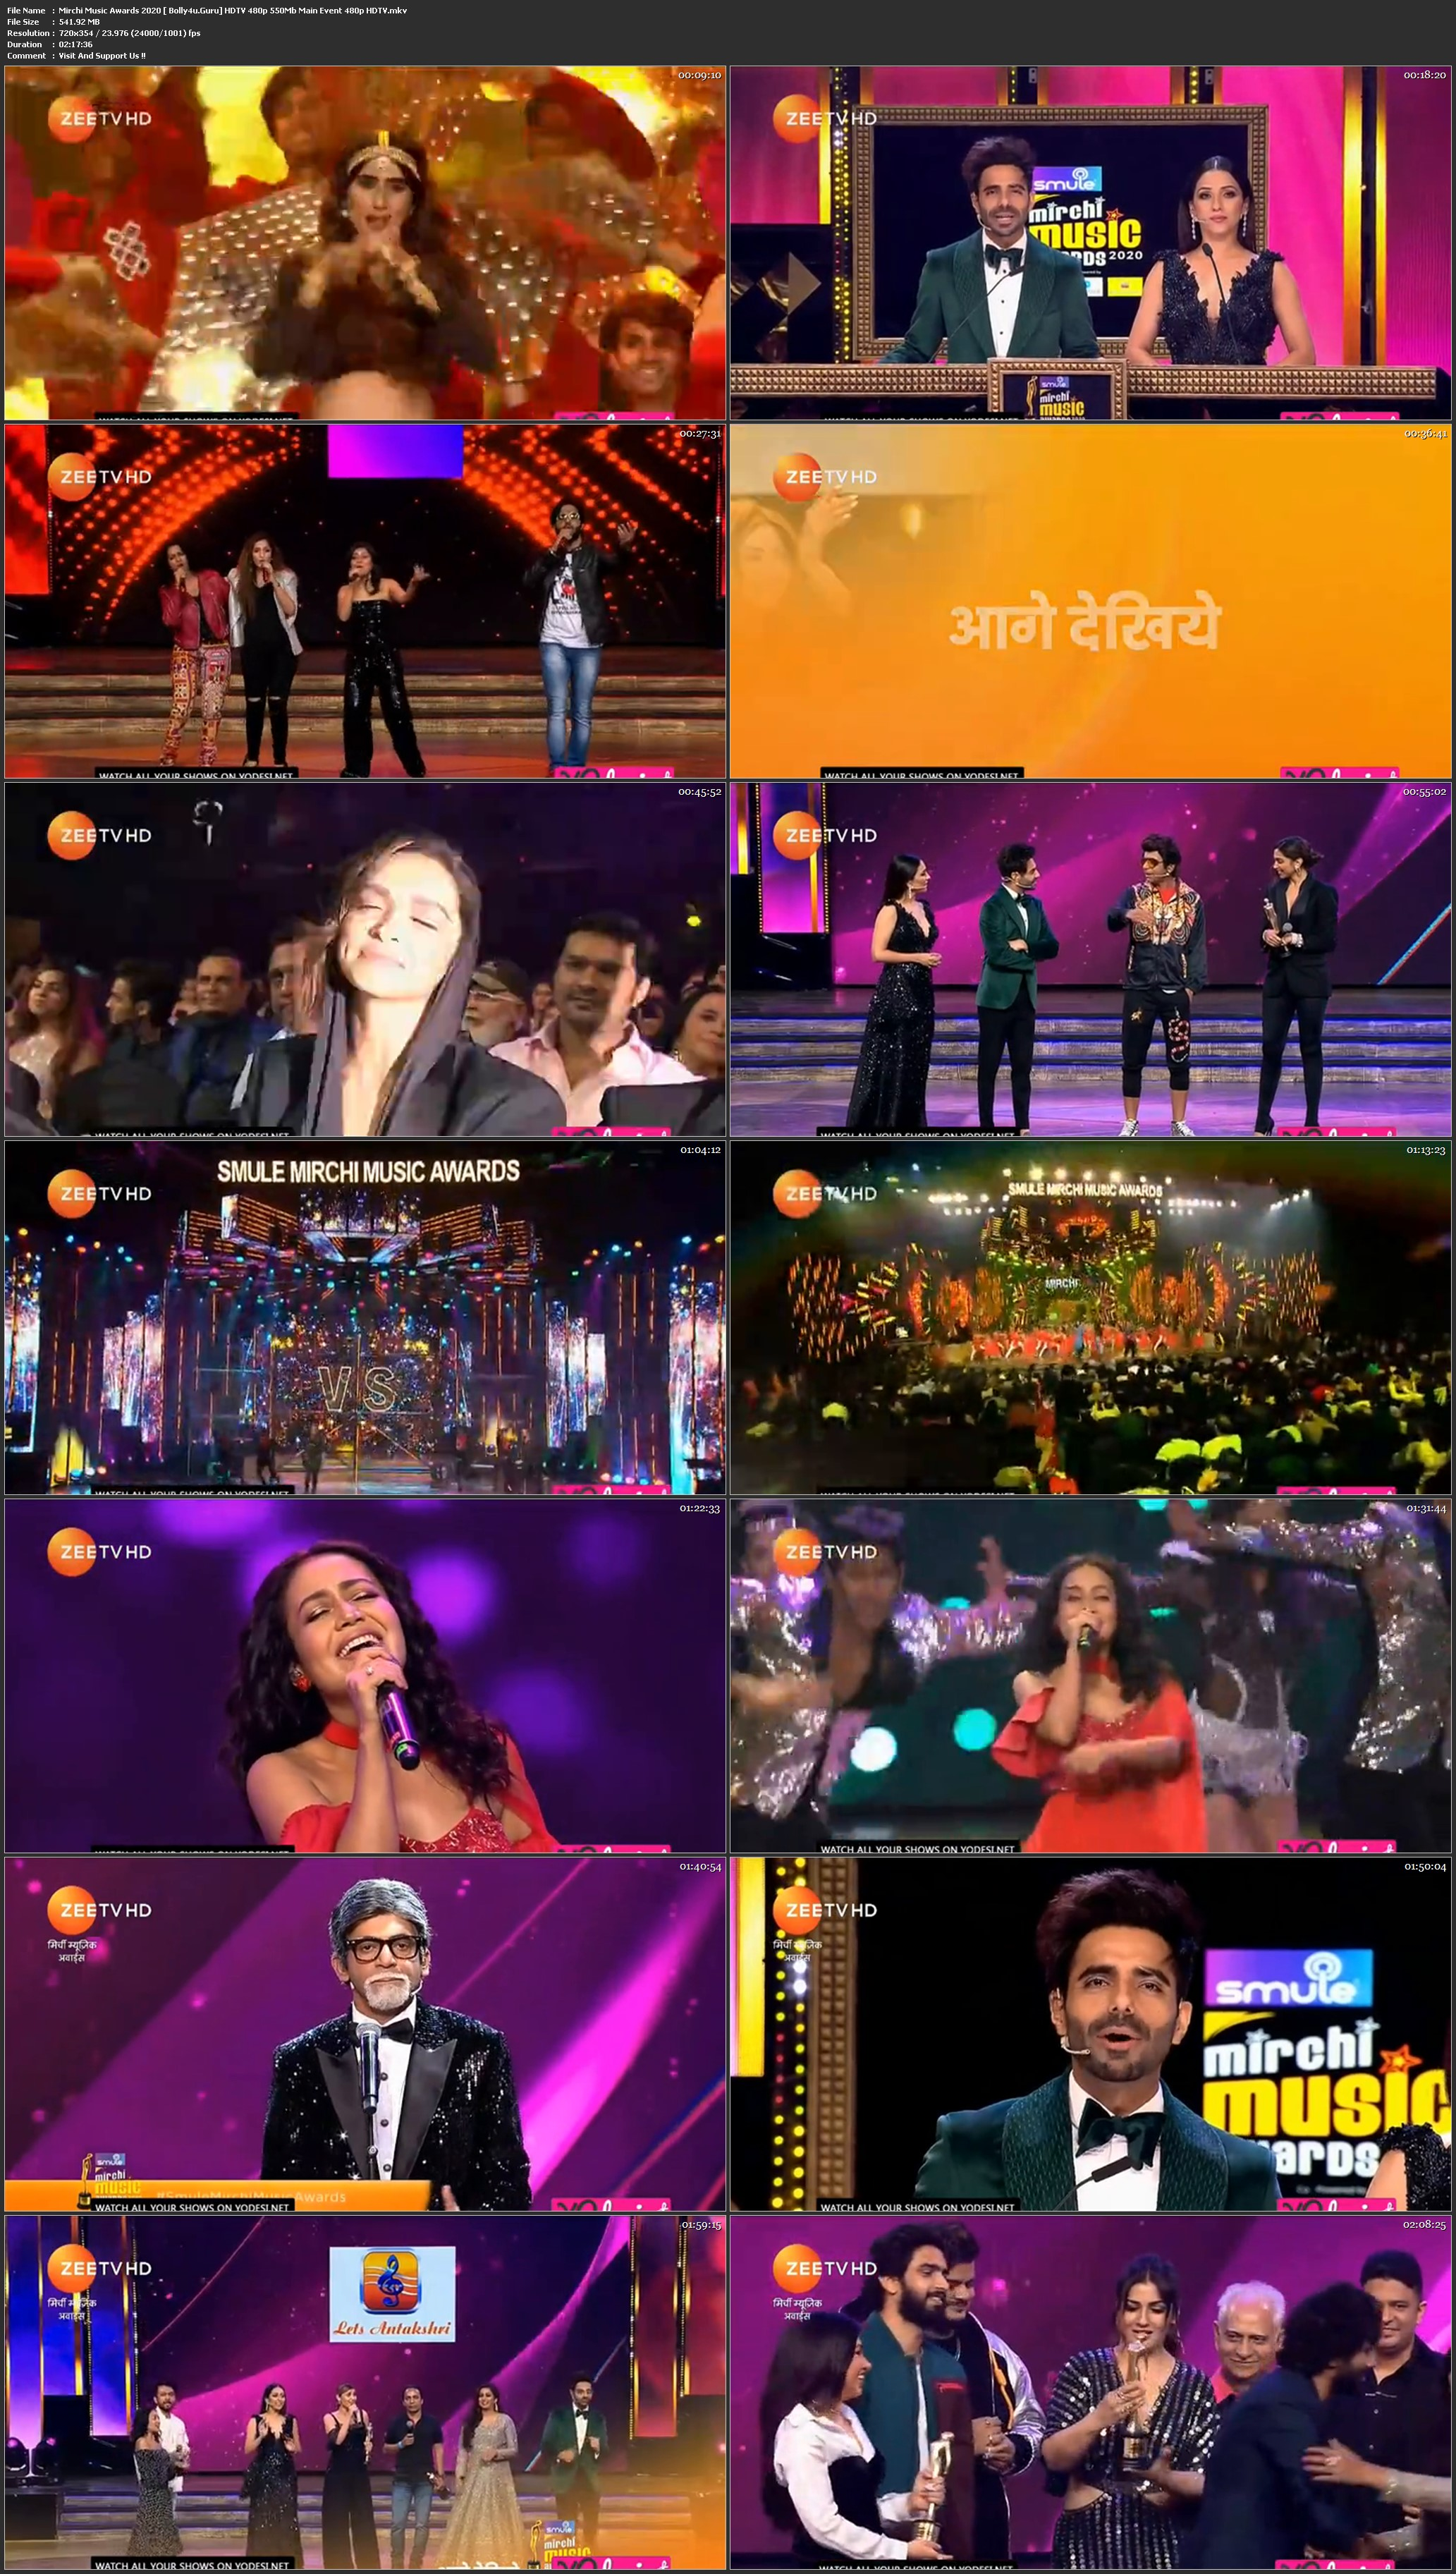 Mirchi Music Awards 2020 HDTV 480p 550Mb Main Event download